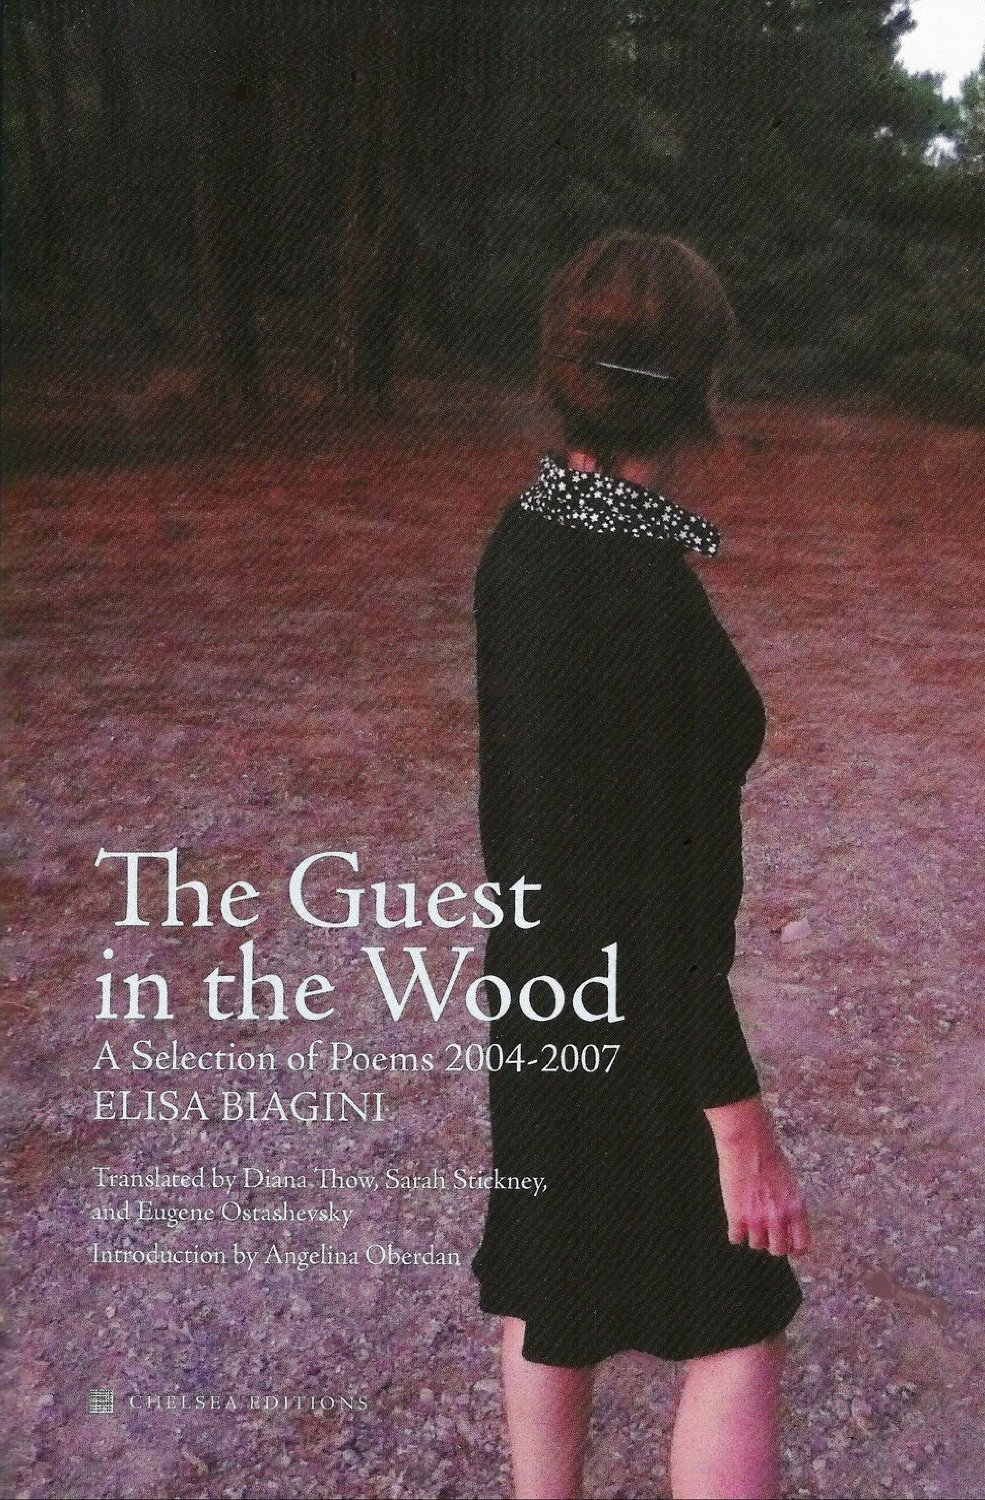 """The Guest in the Woods,"" written by Elisa Biagini and translated from Italian by Diana Thow, Sarah Stickney, and Eugene Ostashevsky."